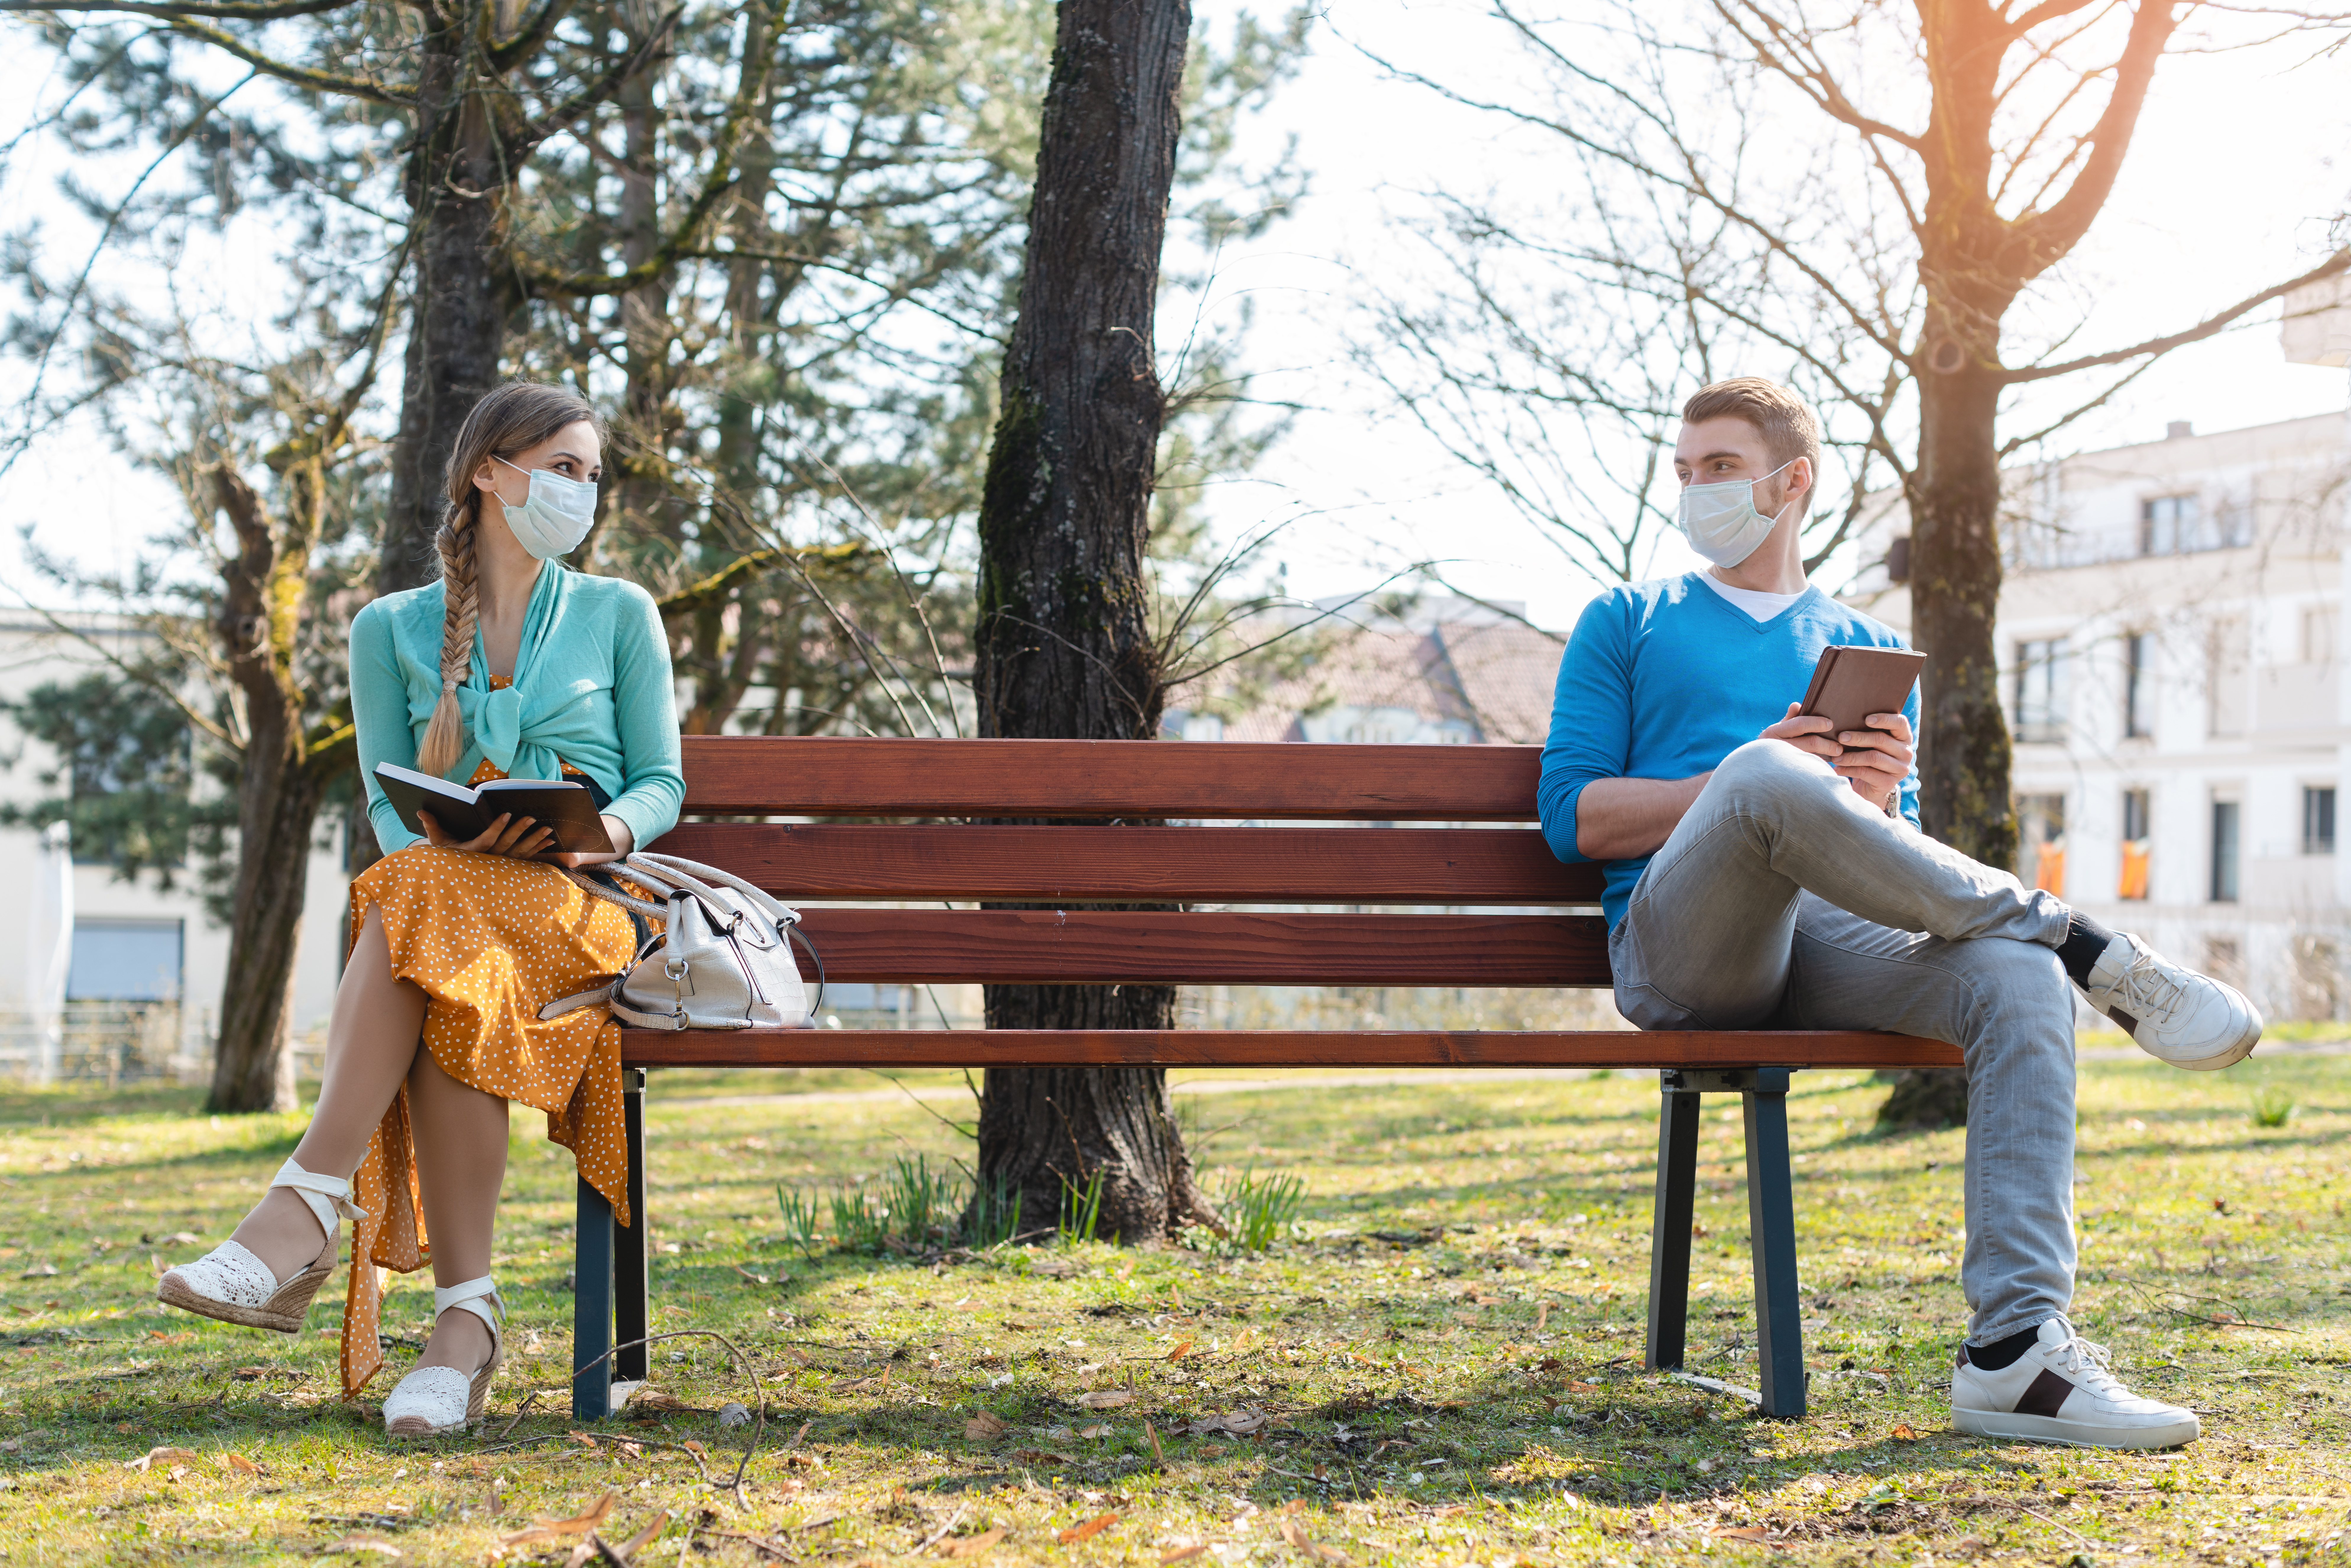 Social Distancing on Bench